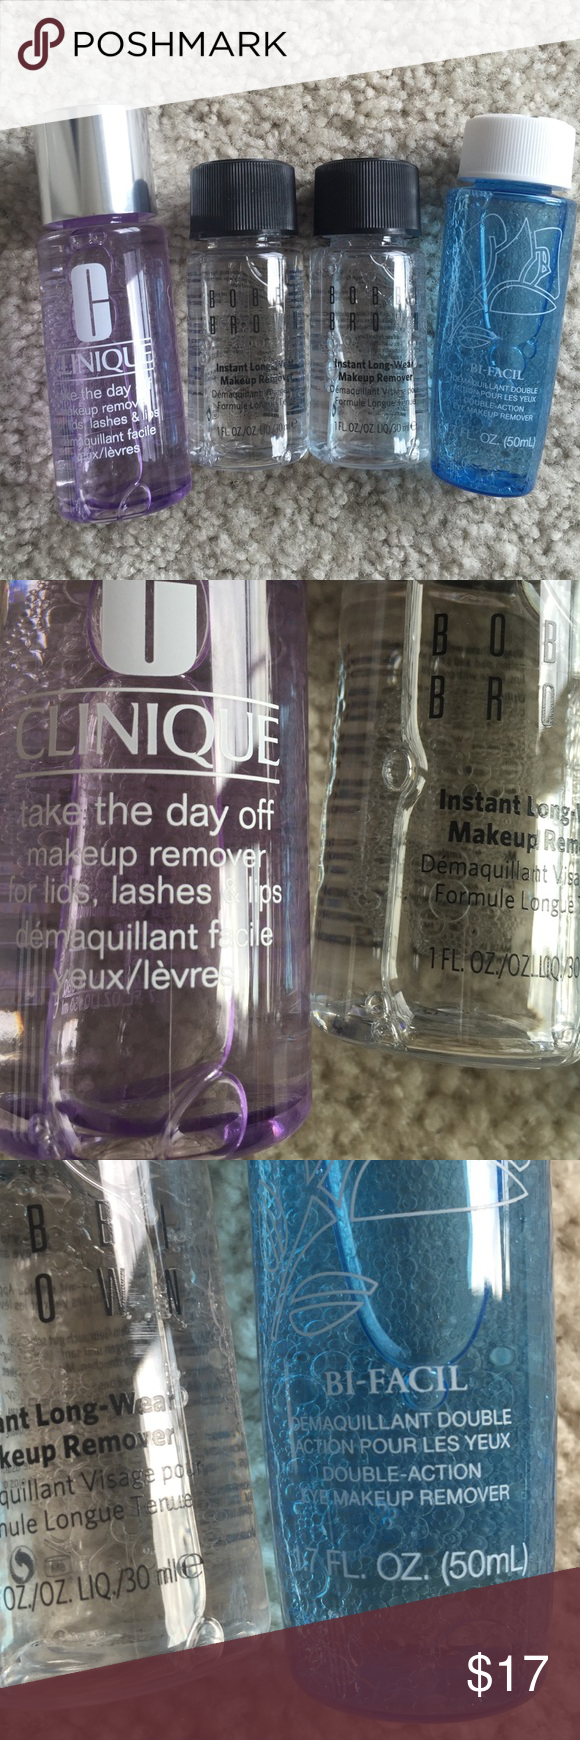 Lip and eye makeup remover bundle All new. Never used. Travel size bundle. Lancôme bi facil 1.7oz. Clinique take the day off 1.7 oz. $9.50. Bobbi brown instant long wear makeup remover 1oz each. $12 each. No trade.10% bundle discount. Bobbi Brown Makeup